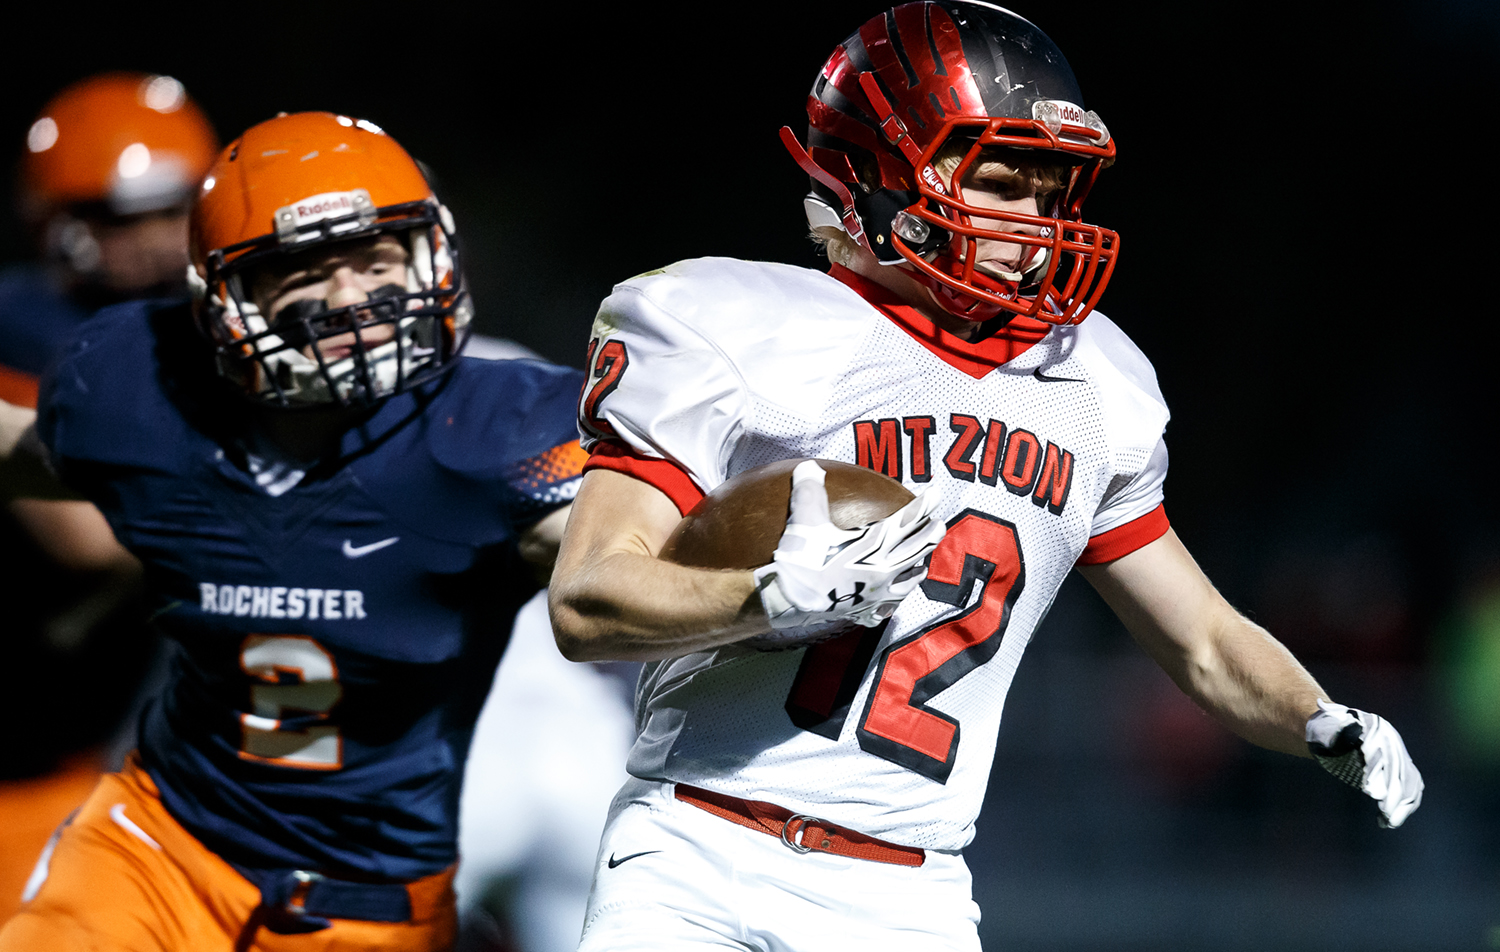 Mt. Zion's Austin Thacker (12) is caught from behind by Rochester's Eric Yakle (2) on a rush in the first half during the first round of the Class 4A playoffs at Rocket Booster Field, Saturday, Nov. 1, 2014, in Rochester, Ill. Justin L. Fowler/The State Journal-Register